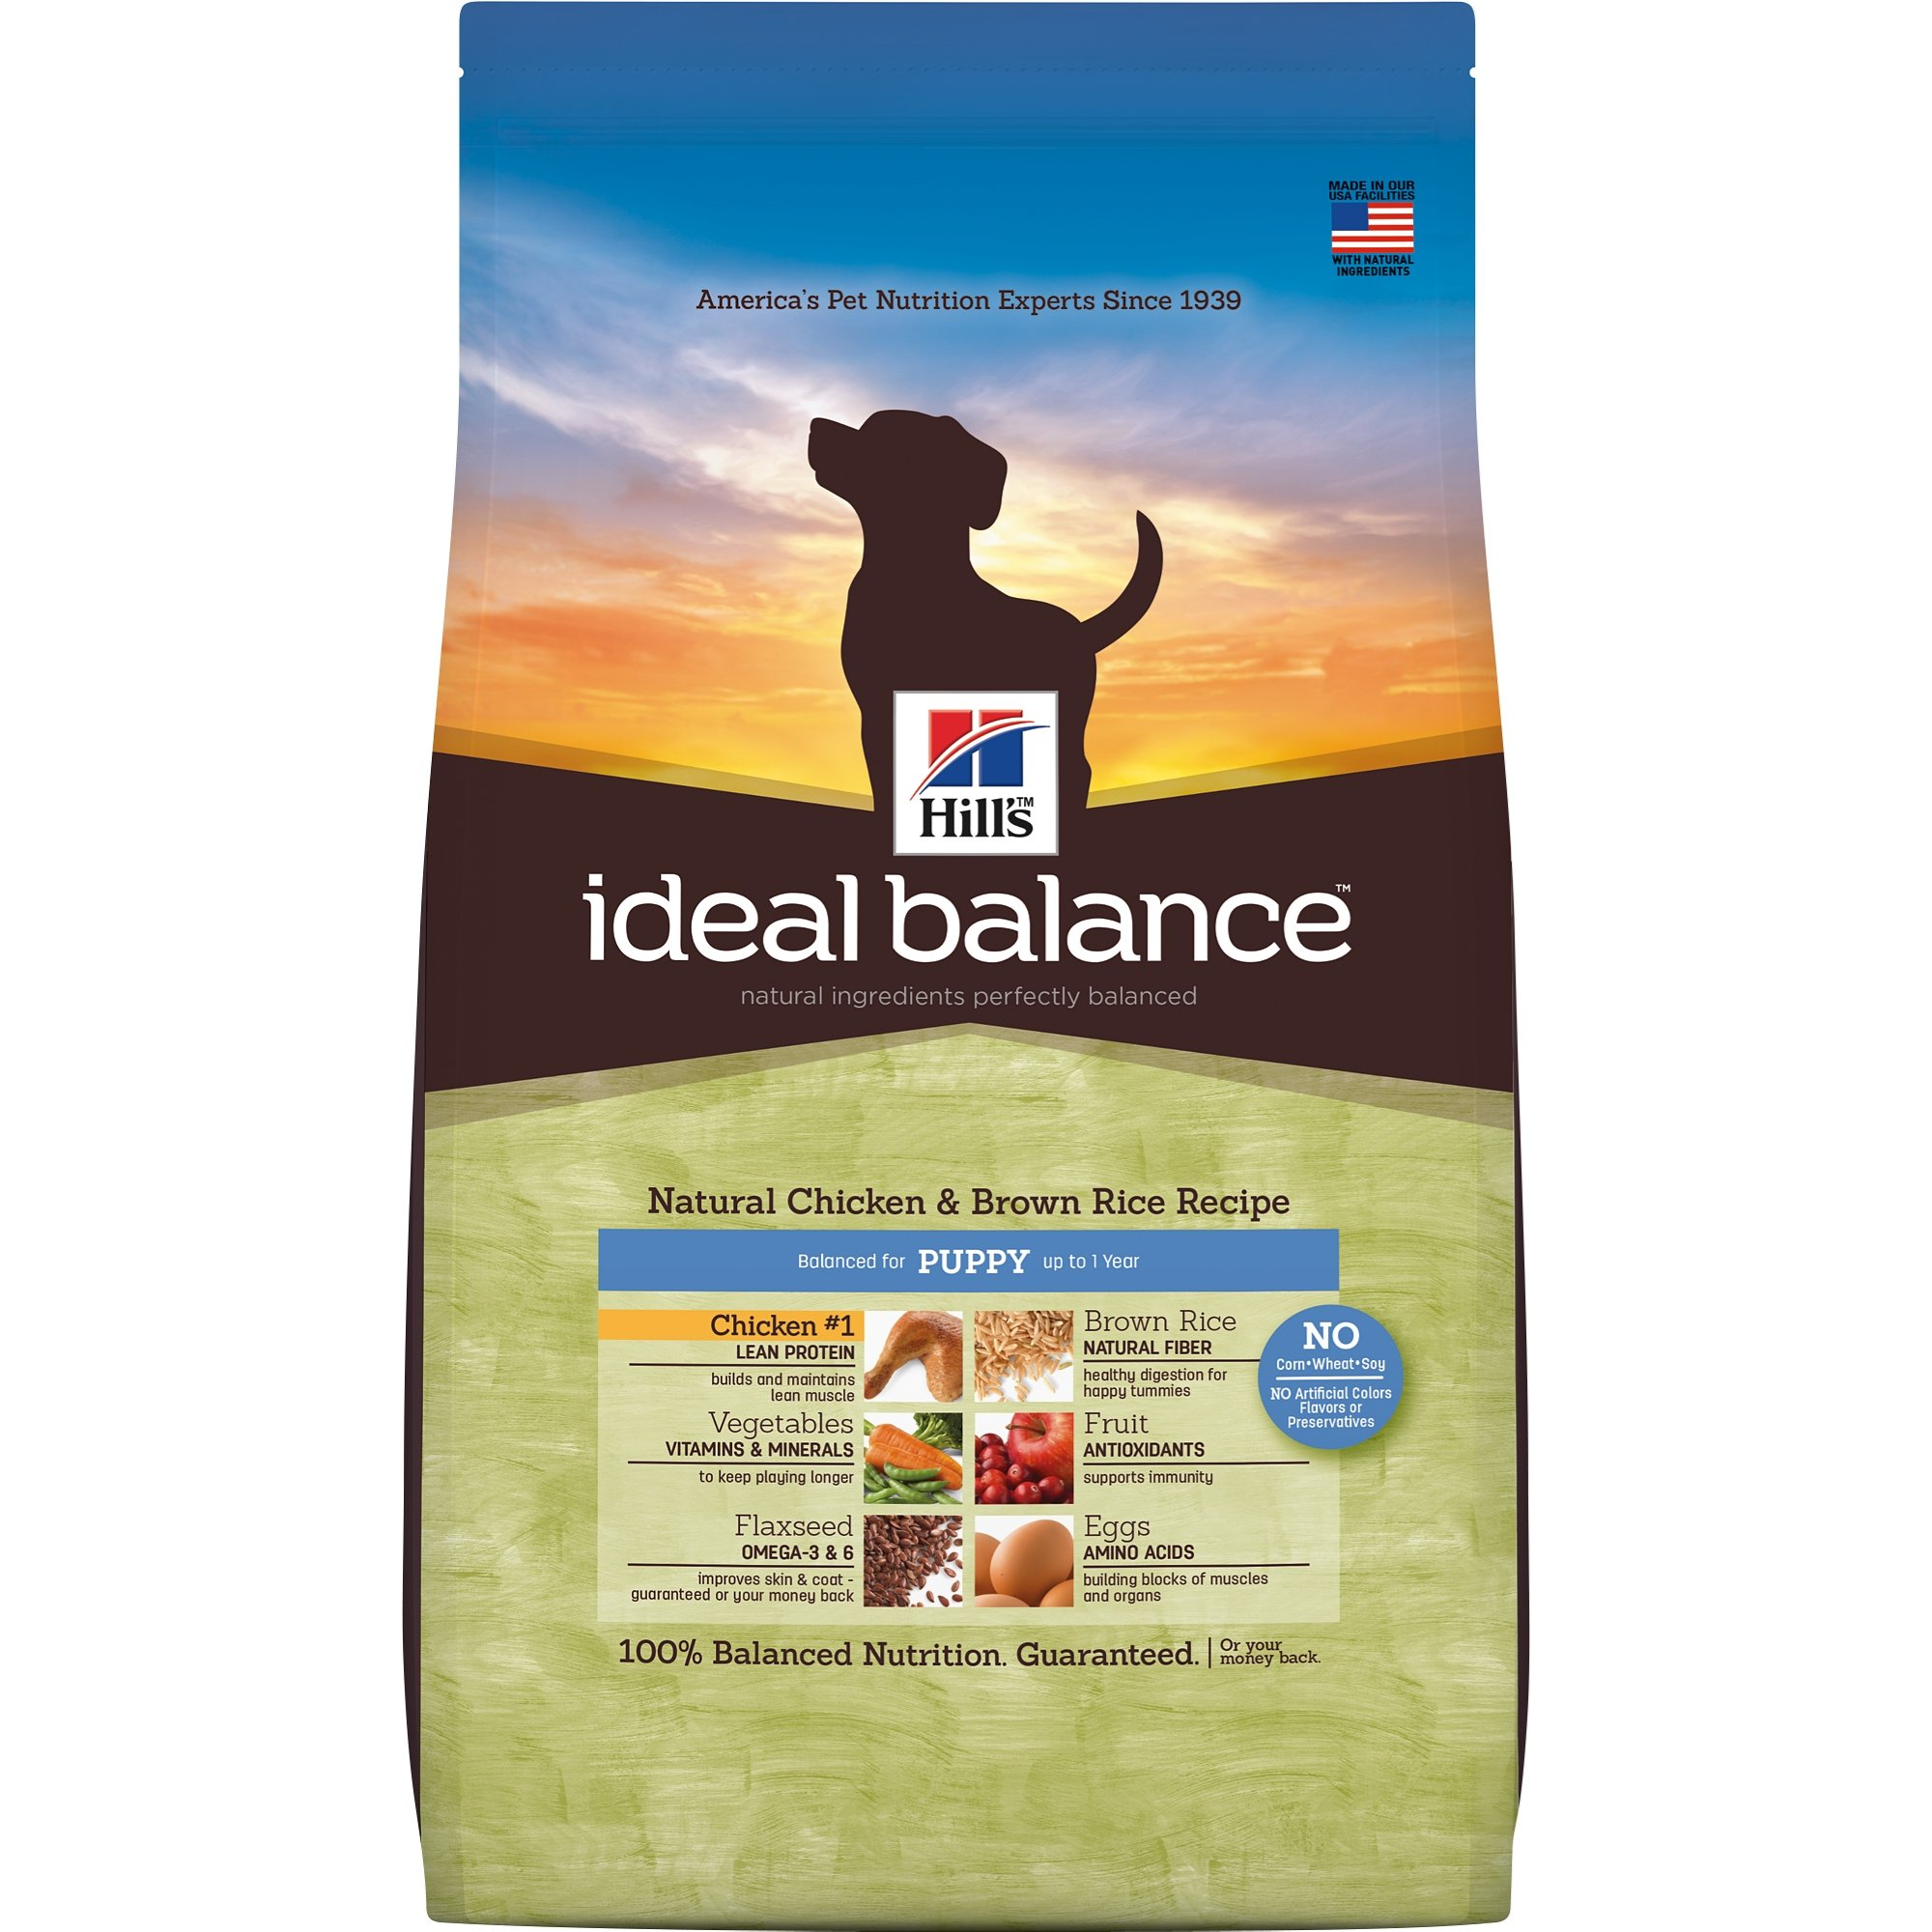 Hill's Ideal Balance Puppy Natural Dog Food, Chicken & Brown Rice Recipe Dry Dog Food, 12.5 lb Bag